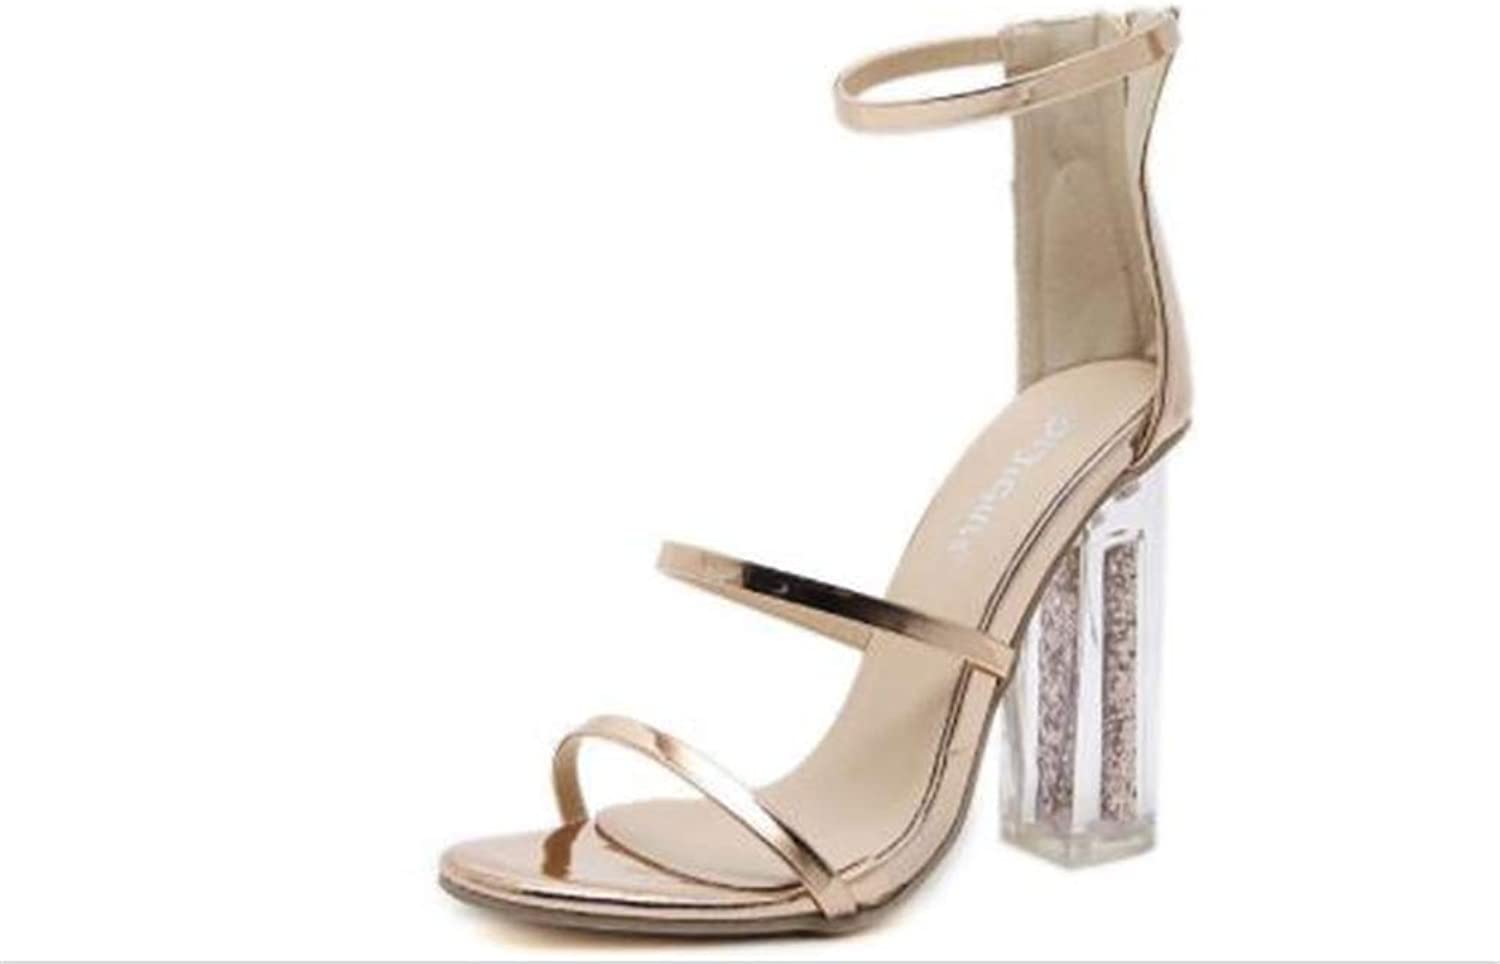 F1rst Rate Womens Strappy Open Toe High Chunky Heel - Sexy Heel Sandal - Strappy shoes